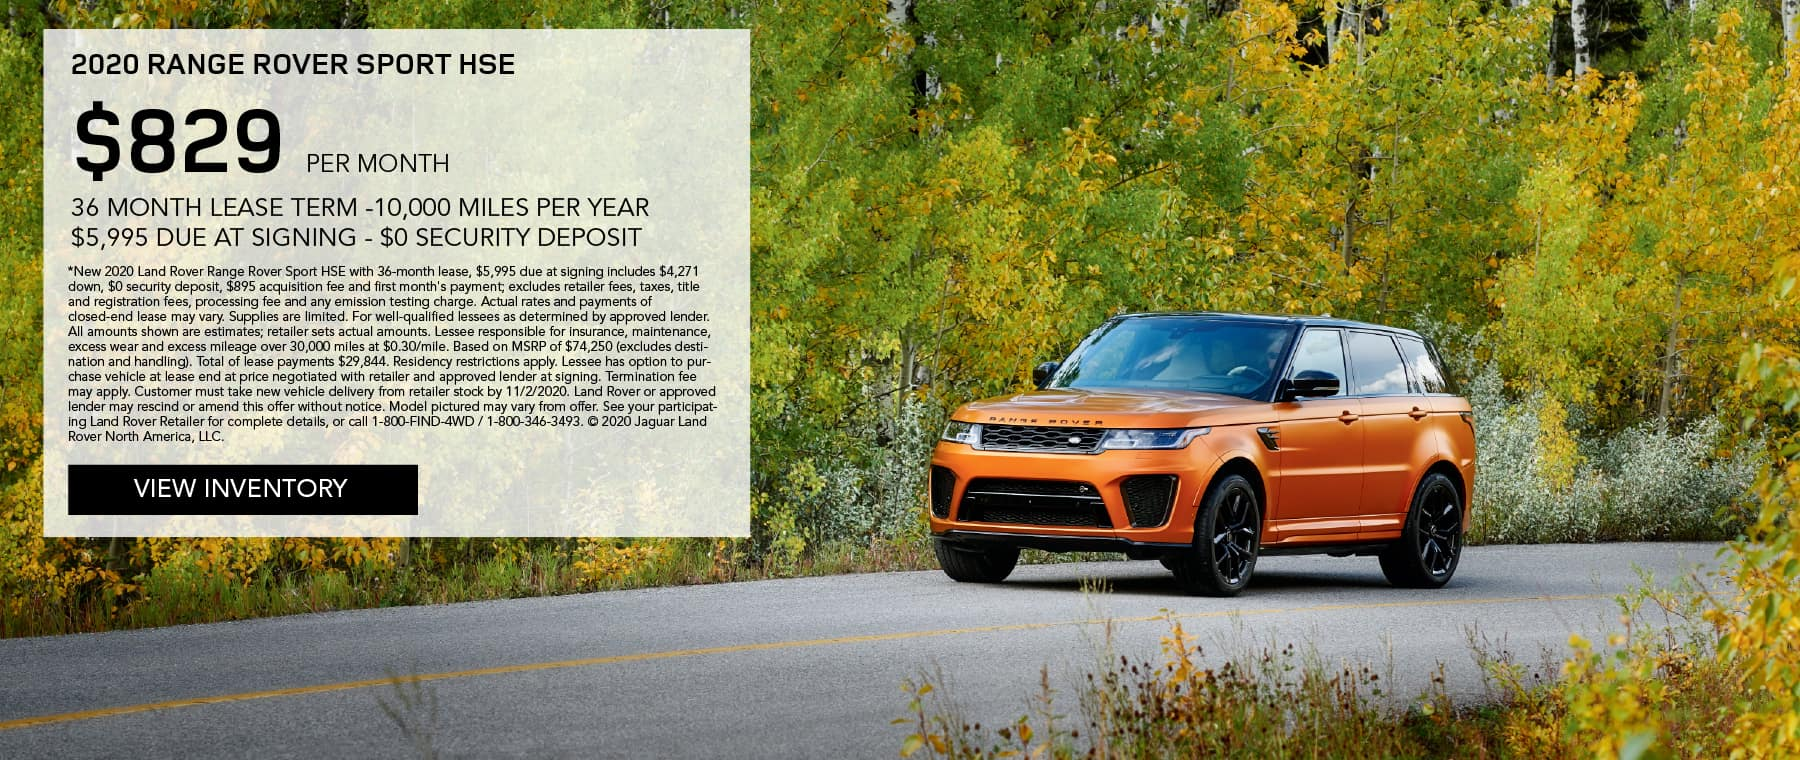 2020 RANGE ROVER SPORT HSE. $829 PER MONTH. 36 MONTH LEASE TERM. $5,995 CASH DUE AT SIGNING. $0 SECURITY DEPOSIT. 10,000 MILES PER YEAR. EXCLUDES RETAILER FEES, TAXES, TITLE AND REGISTRATION FEES, PROCESSING FEE AND ANY EMISSION TESTING CHARGE. ENDS 11/2/2020. VIEW INVENTORY. ORANGE RANGE ROVER SPORT DRIVING DOWN ROAD THROUGH FALL TREES.